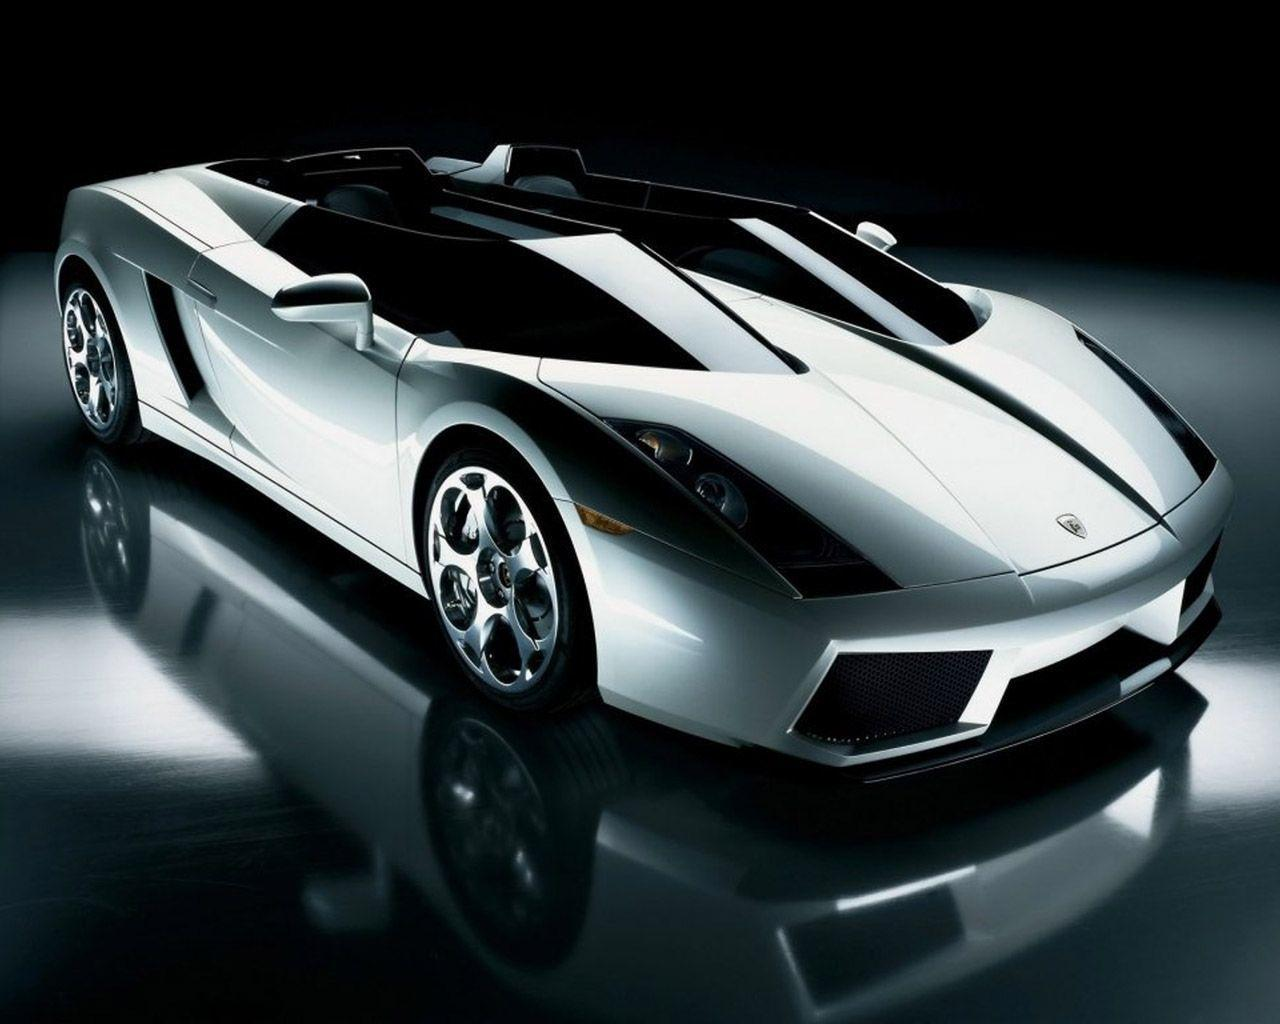 Wallpaper download cars and bikes free - Cars Wallpapers Images Free Art Wallpapers